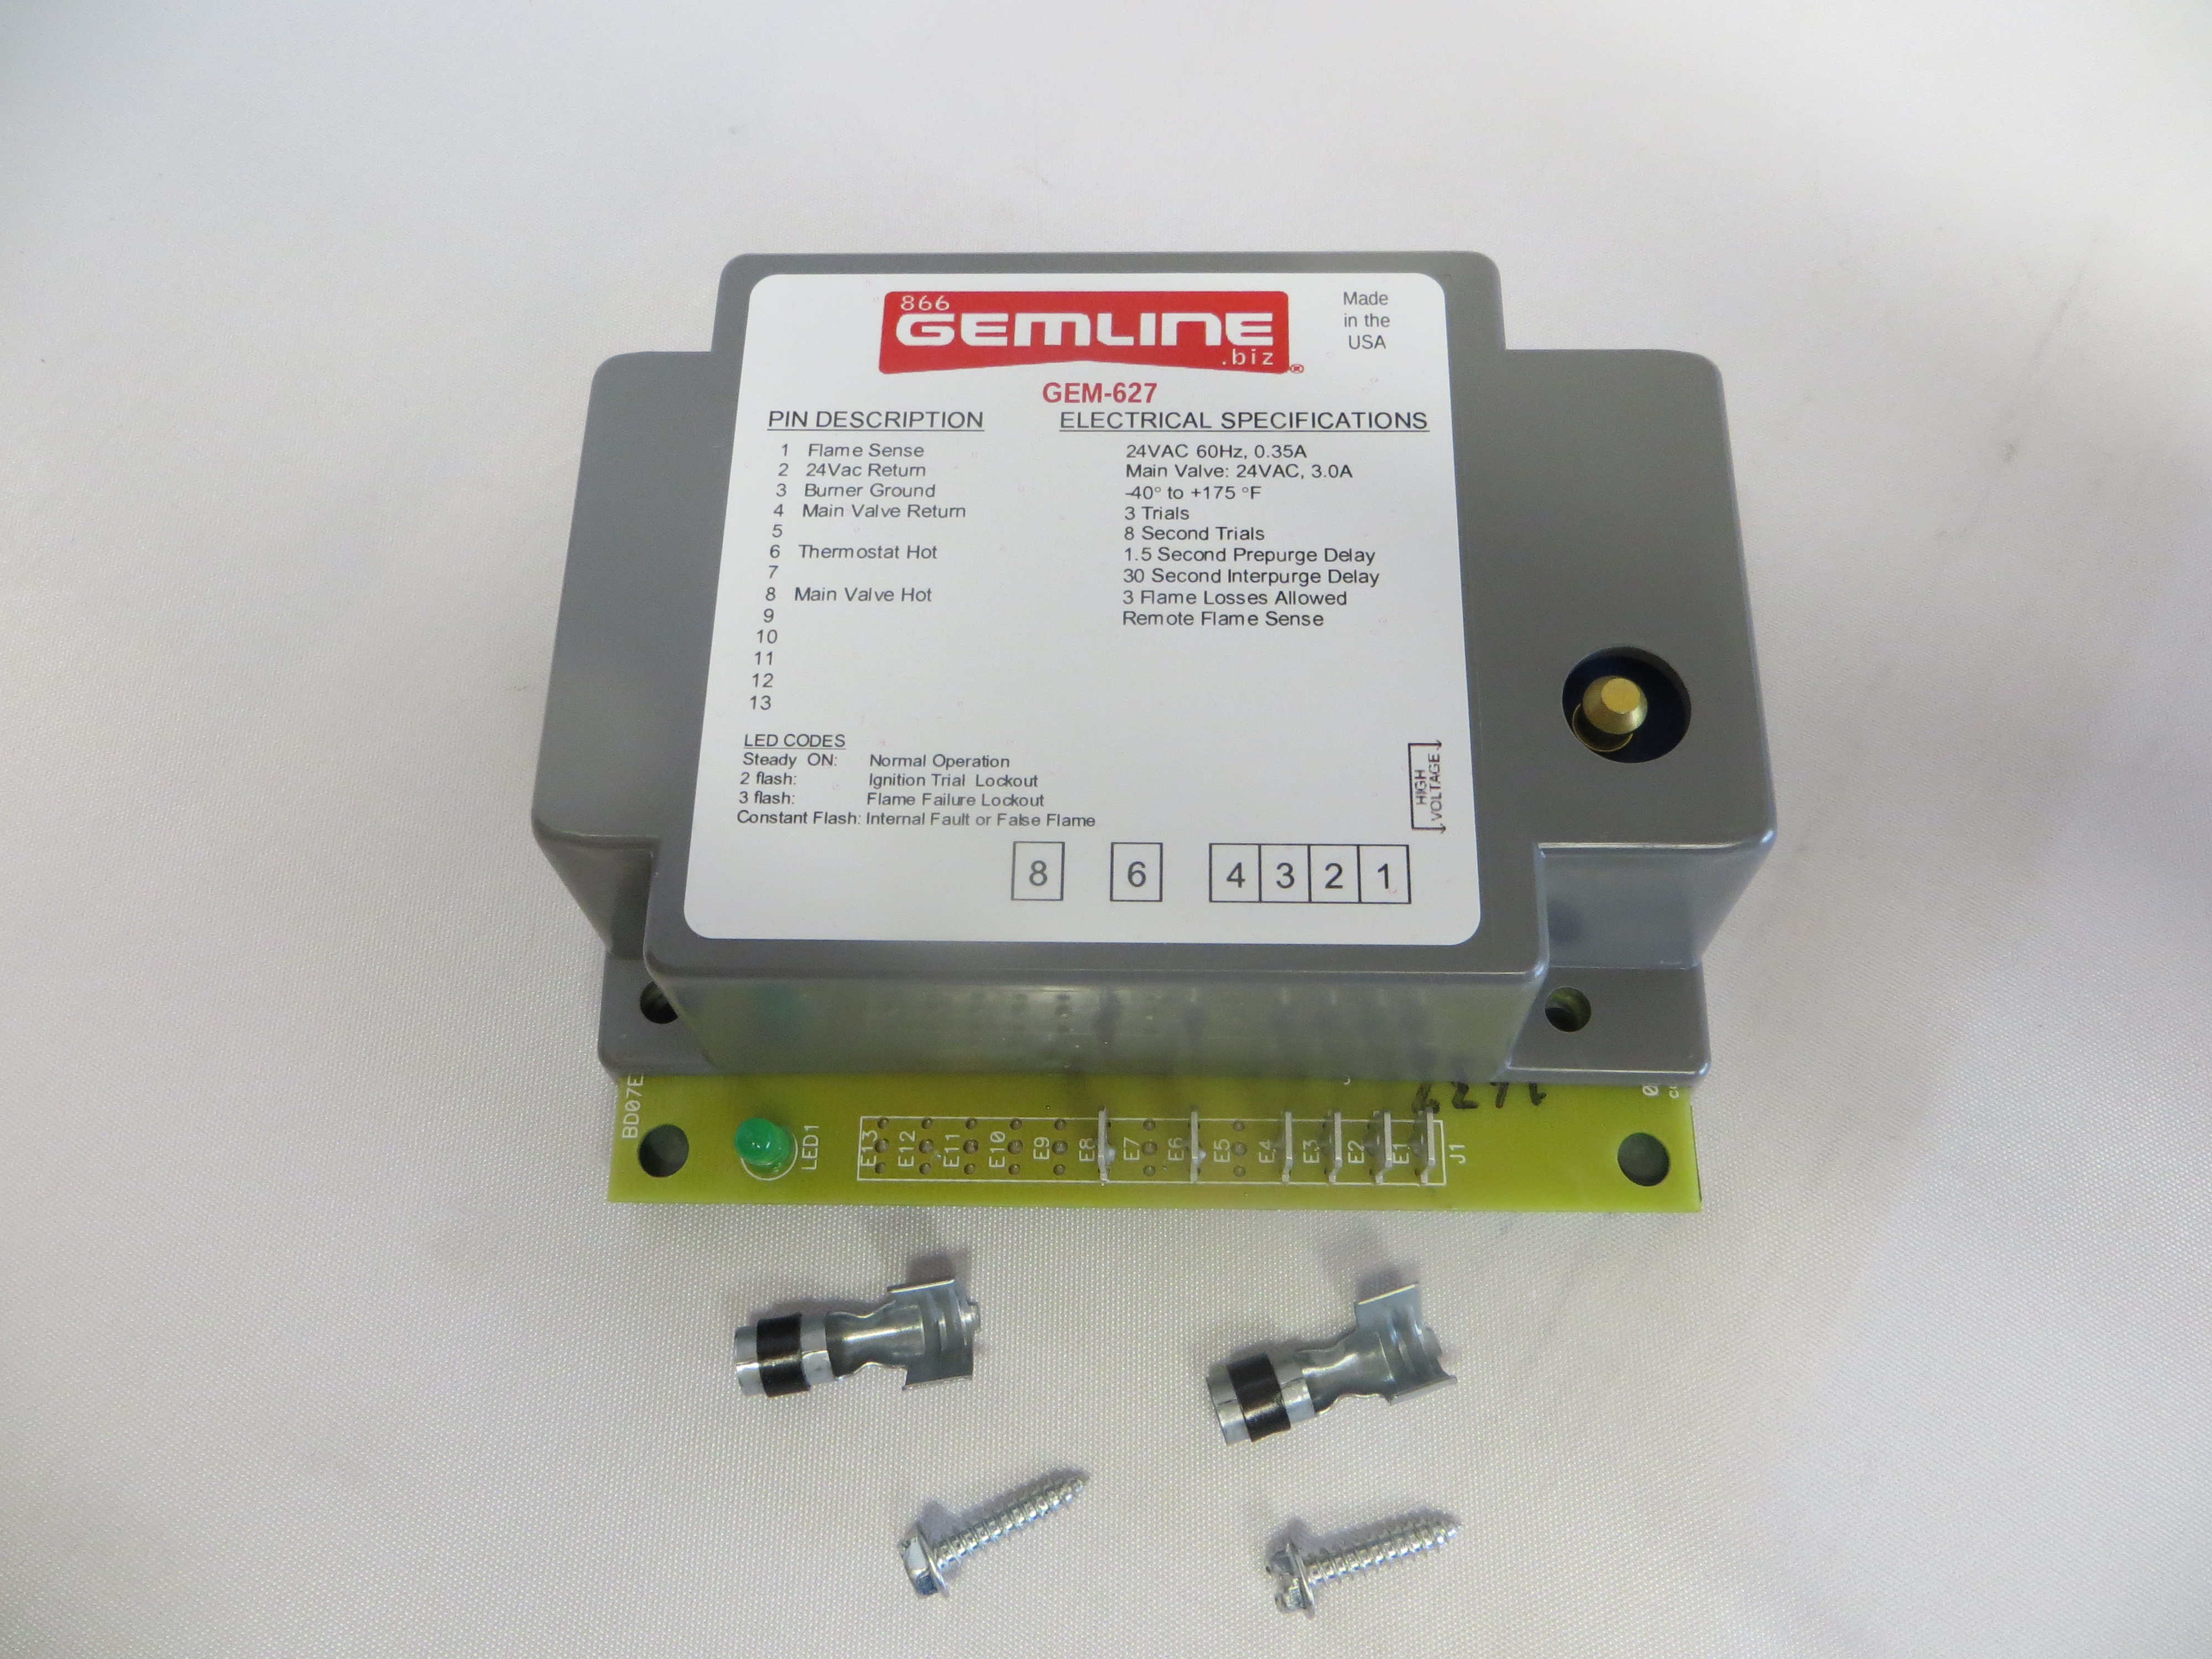 Generic ADC Ignitor Replacement Kit